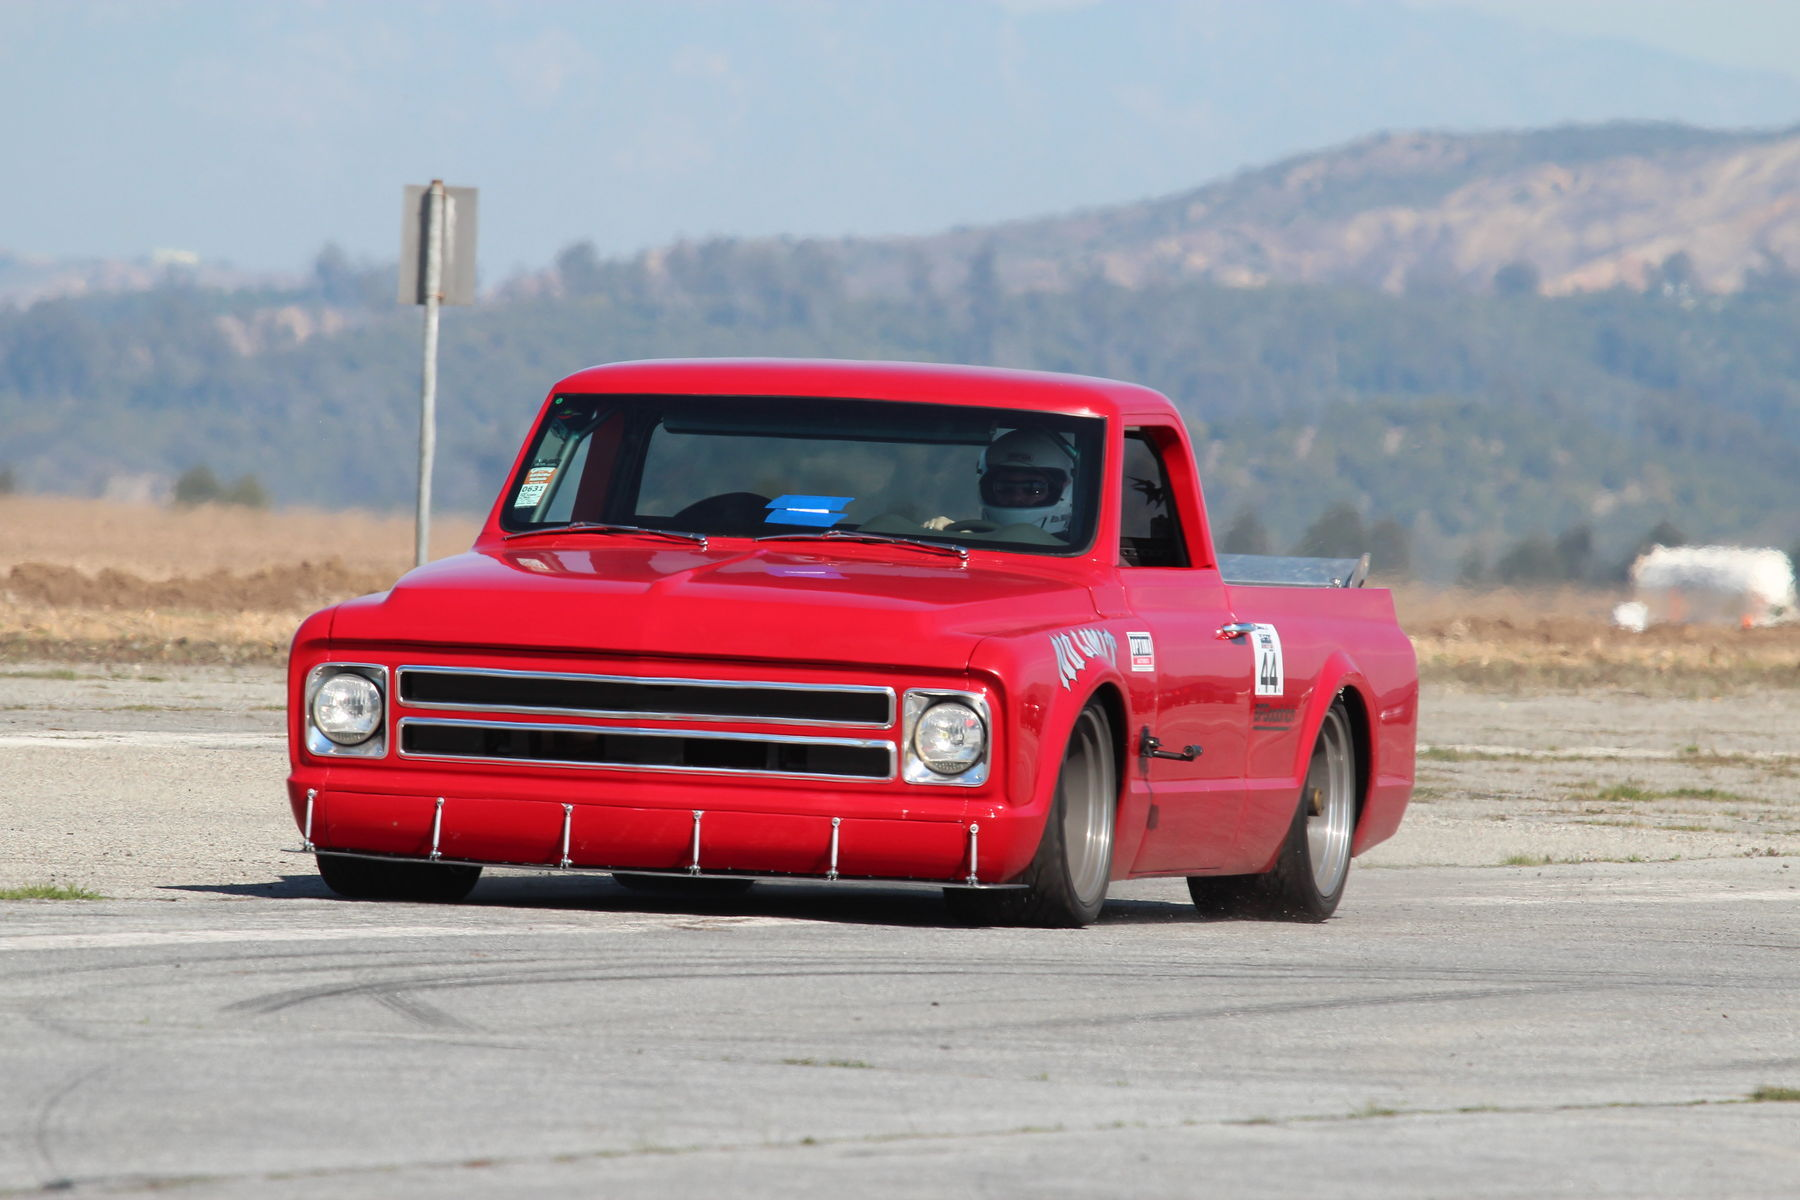 1970 Chevrolet C-10 | No Limits Engineering Chevy C10 'Hellboy' - Excelling On The Track